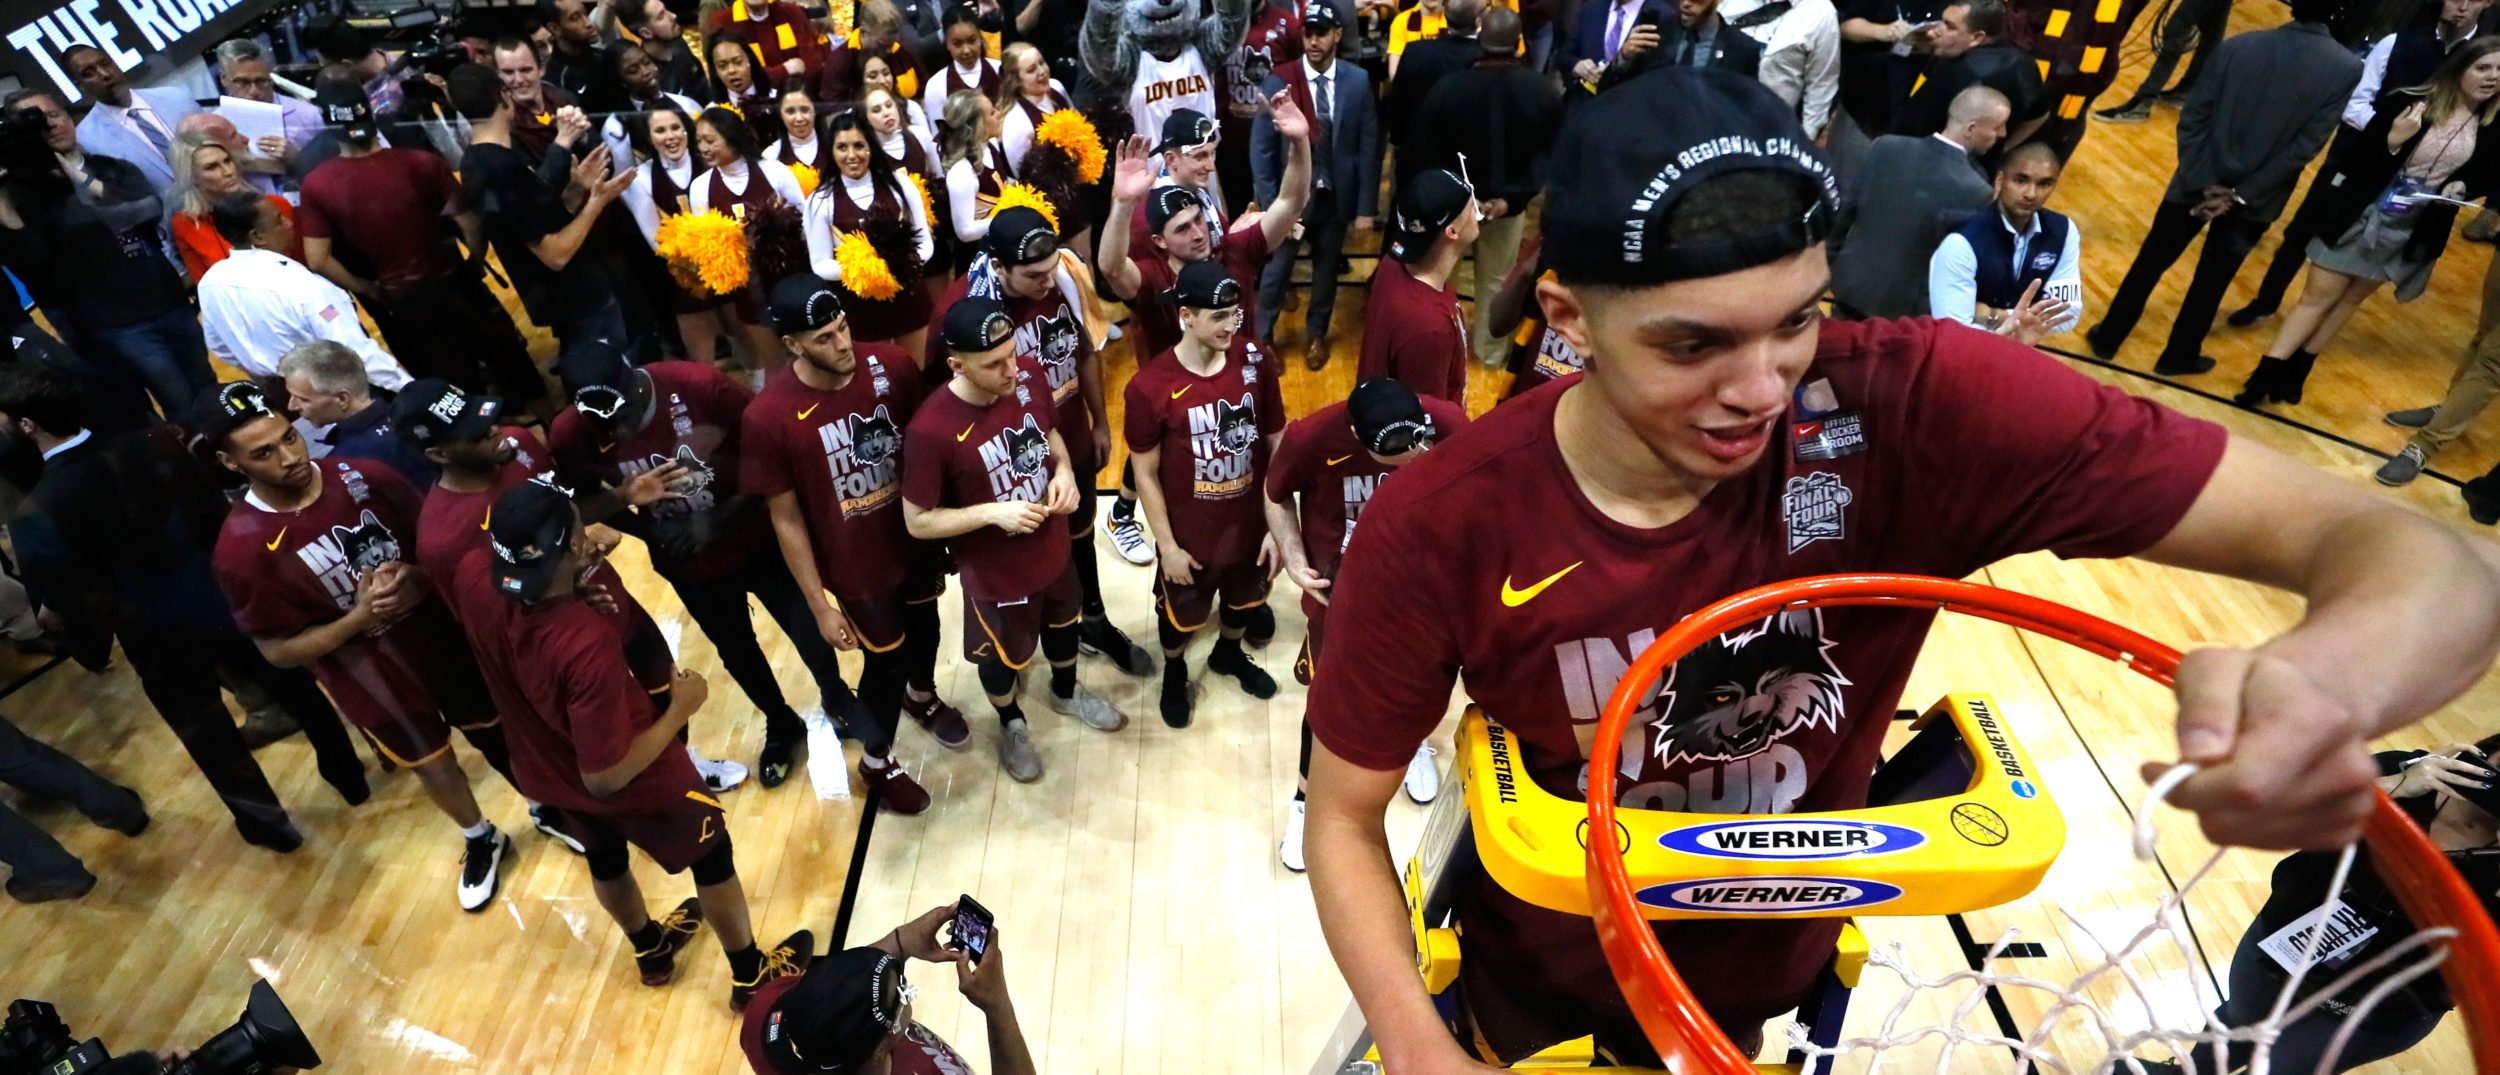 Lucas Williamson #1 of the Loyola Ramblers celebrates by cutting down the net after defeating the Kansas State Wildcats during the 2018 NCAA Men's Basketball Tournament South Regional at Philips Arena on March 24, 2018 in Atlanta. Loyola defeated Kansas State 78-62 to advance to the Final Four. (Photo by Ronald Martinez/Getty Images)